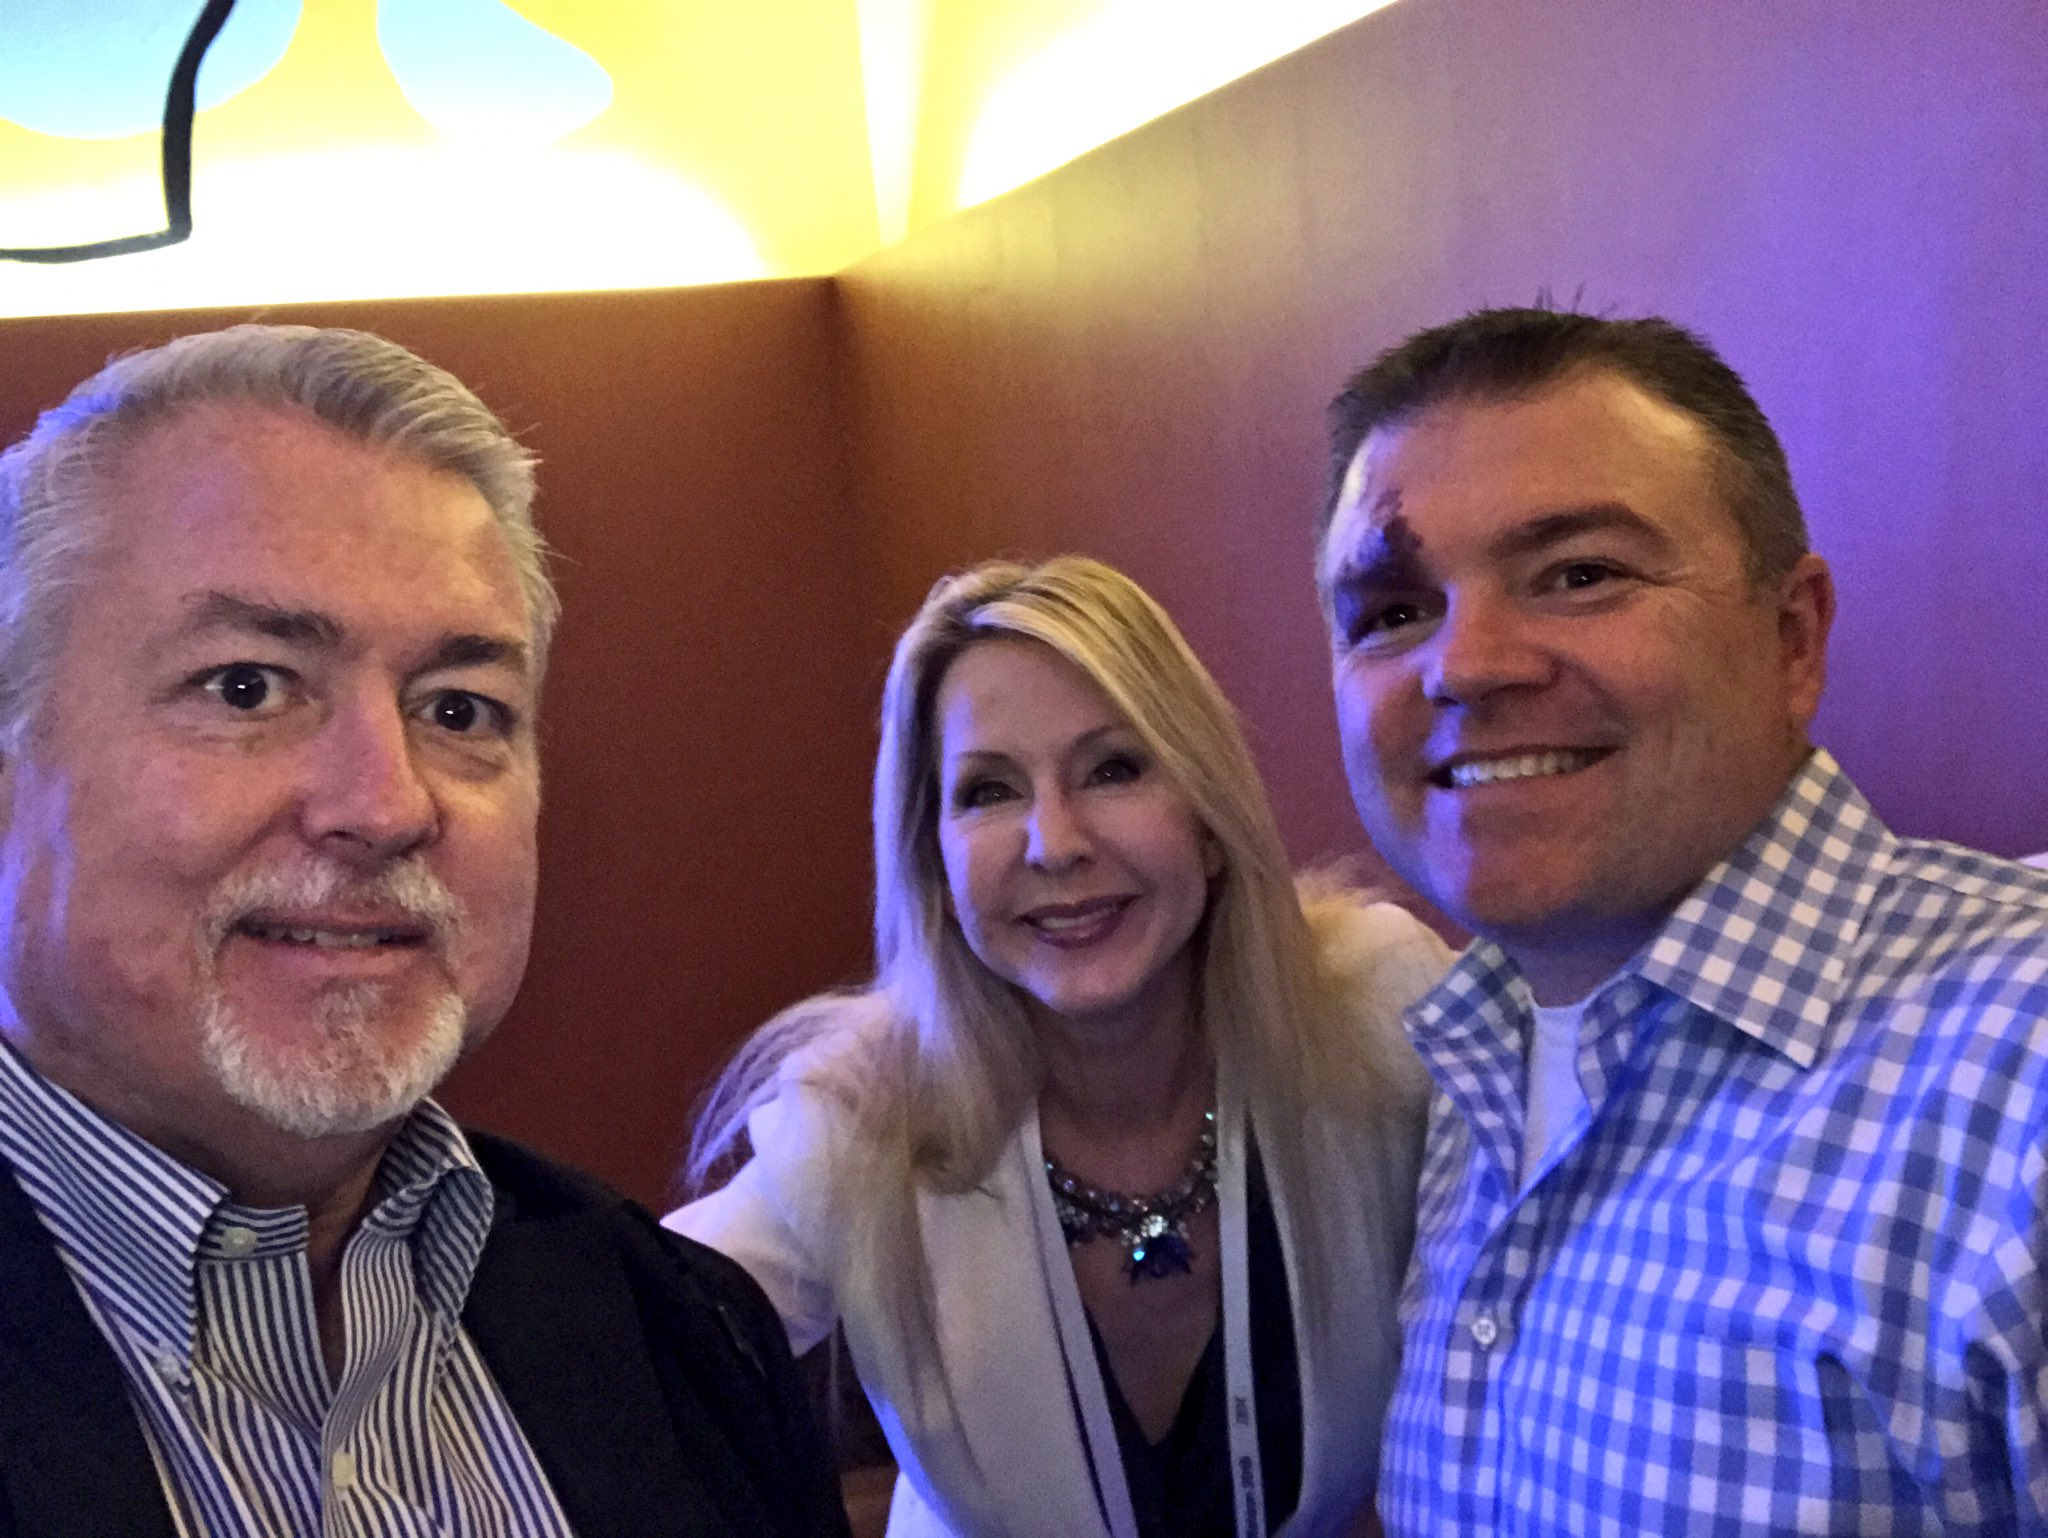 At the #IoT Jamboree lunch at #IBMWoW with the terrific @tcrawford and @TamaraMcCleary. #ai https://t.co/RQeZfyJ4VU